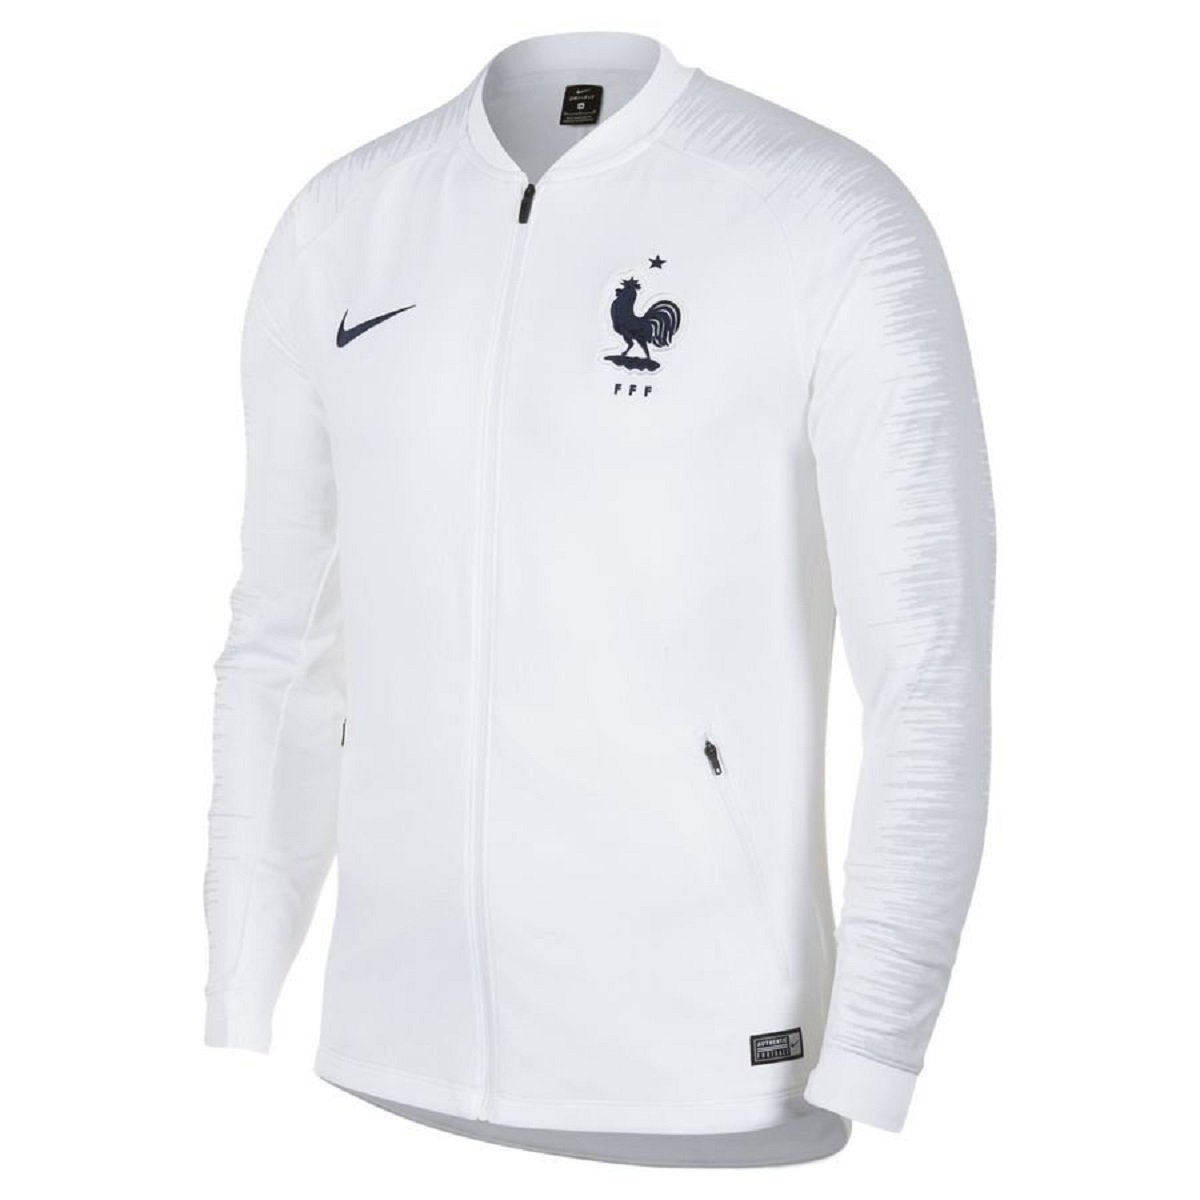 2018-2019 France Nike Anthem Jacket (White) B07C7RR76Q Medium 38-40